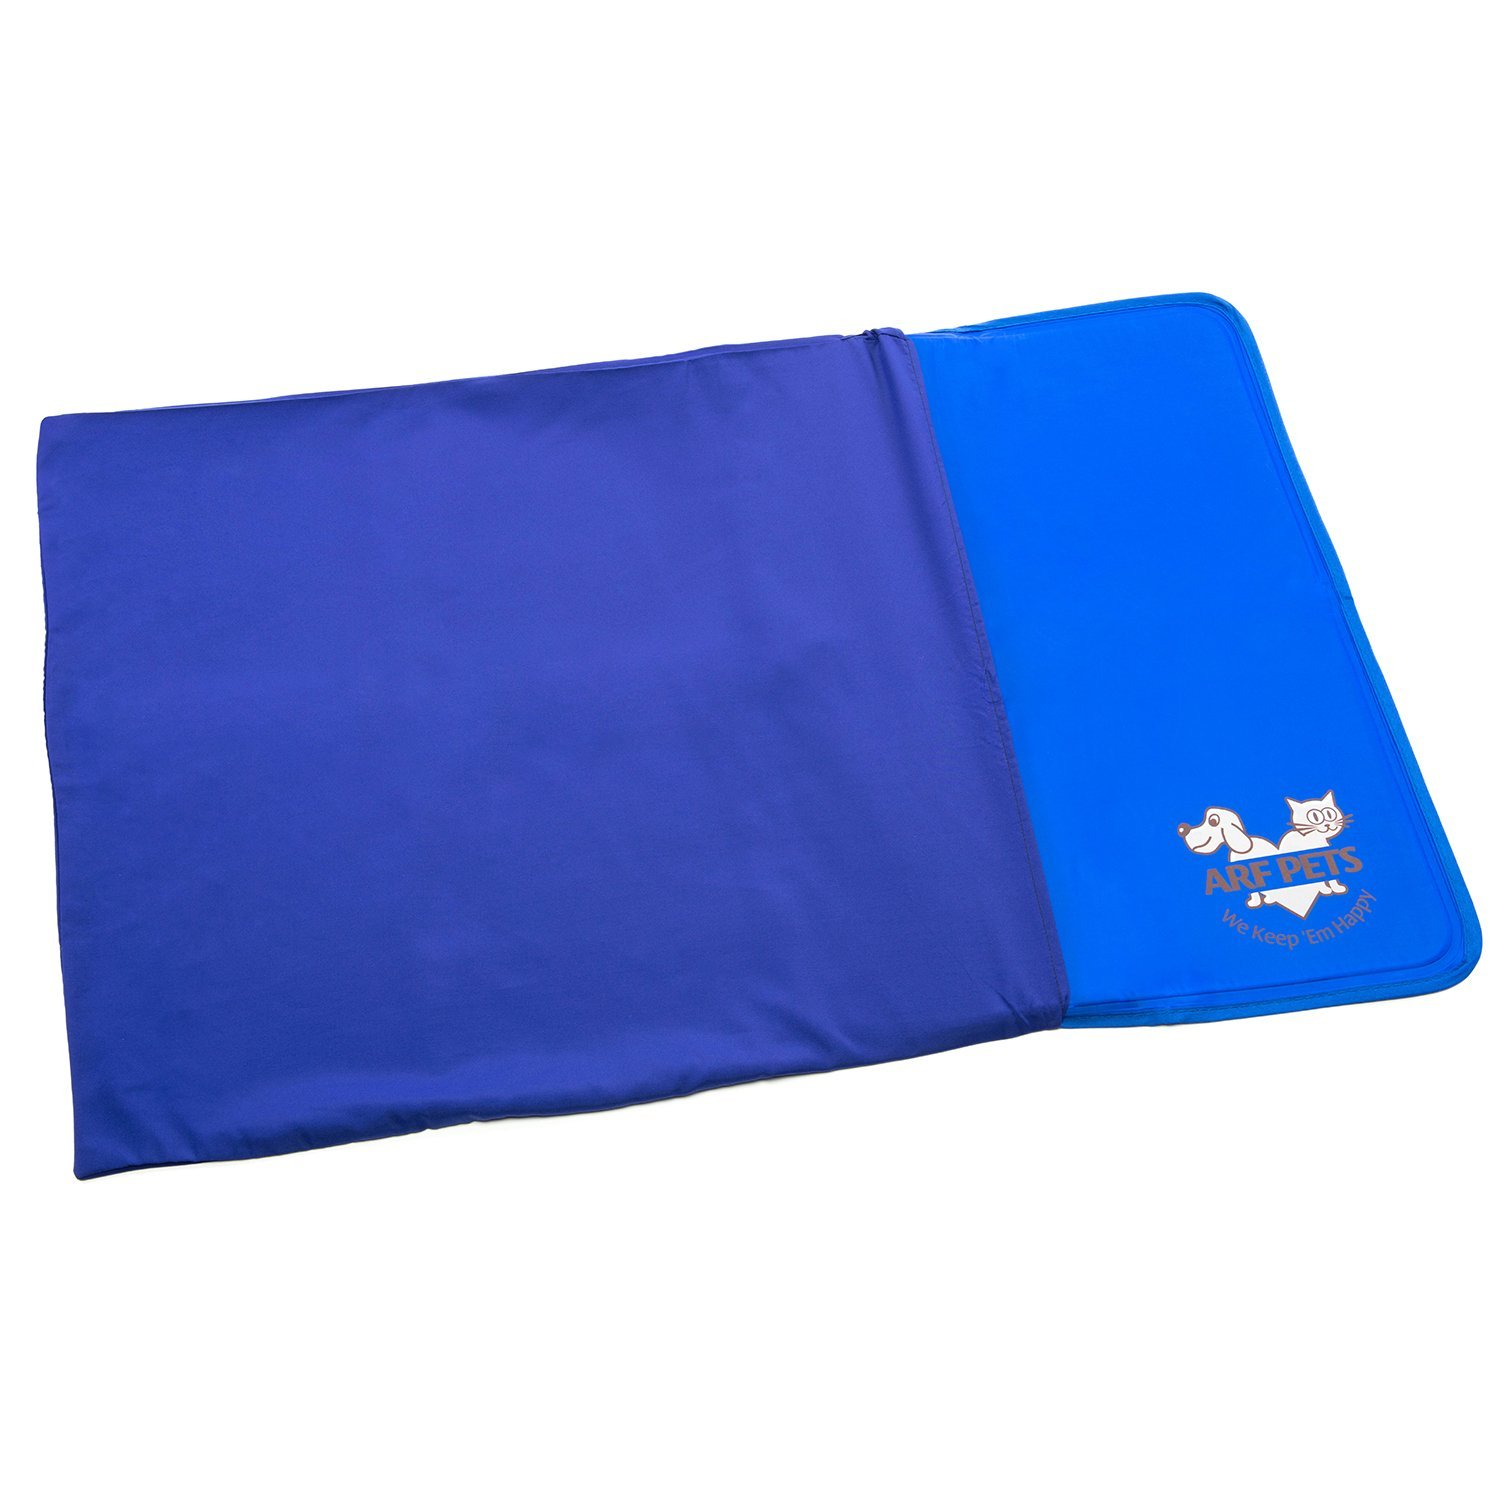 Arf Pets Cooling Mat Protector & Cover - Durable and Machine Washable Material